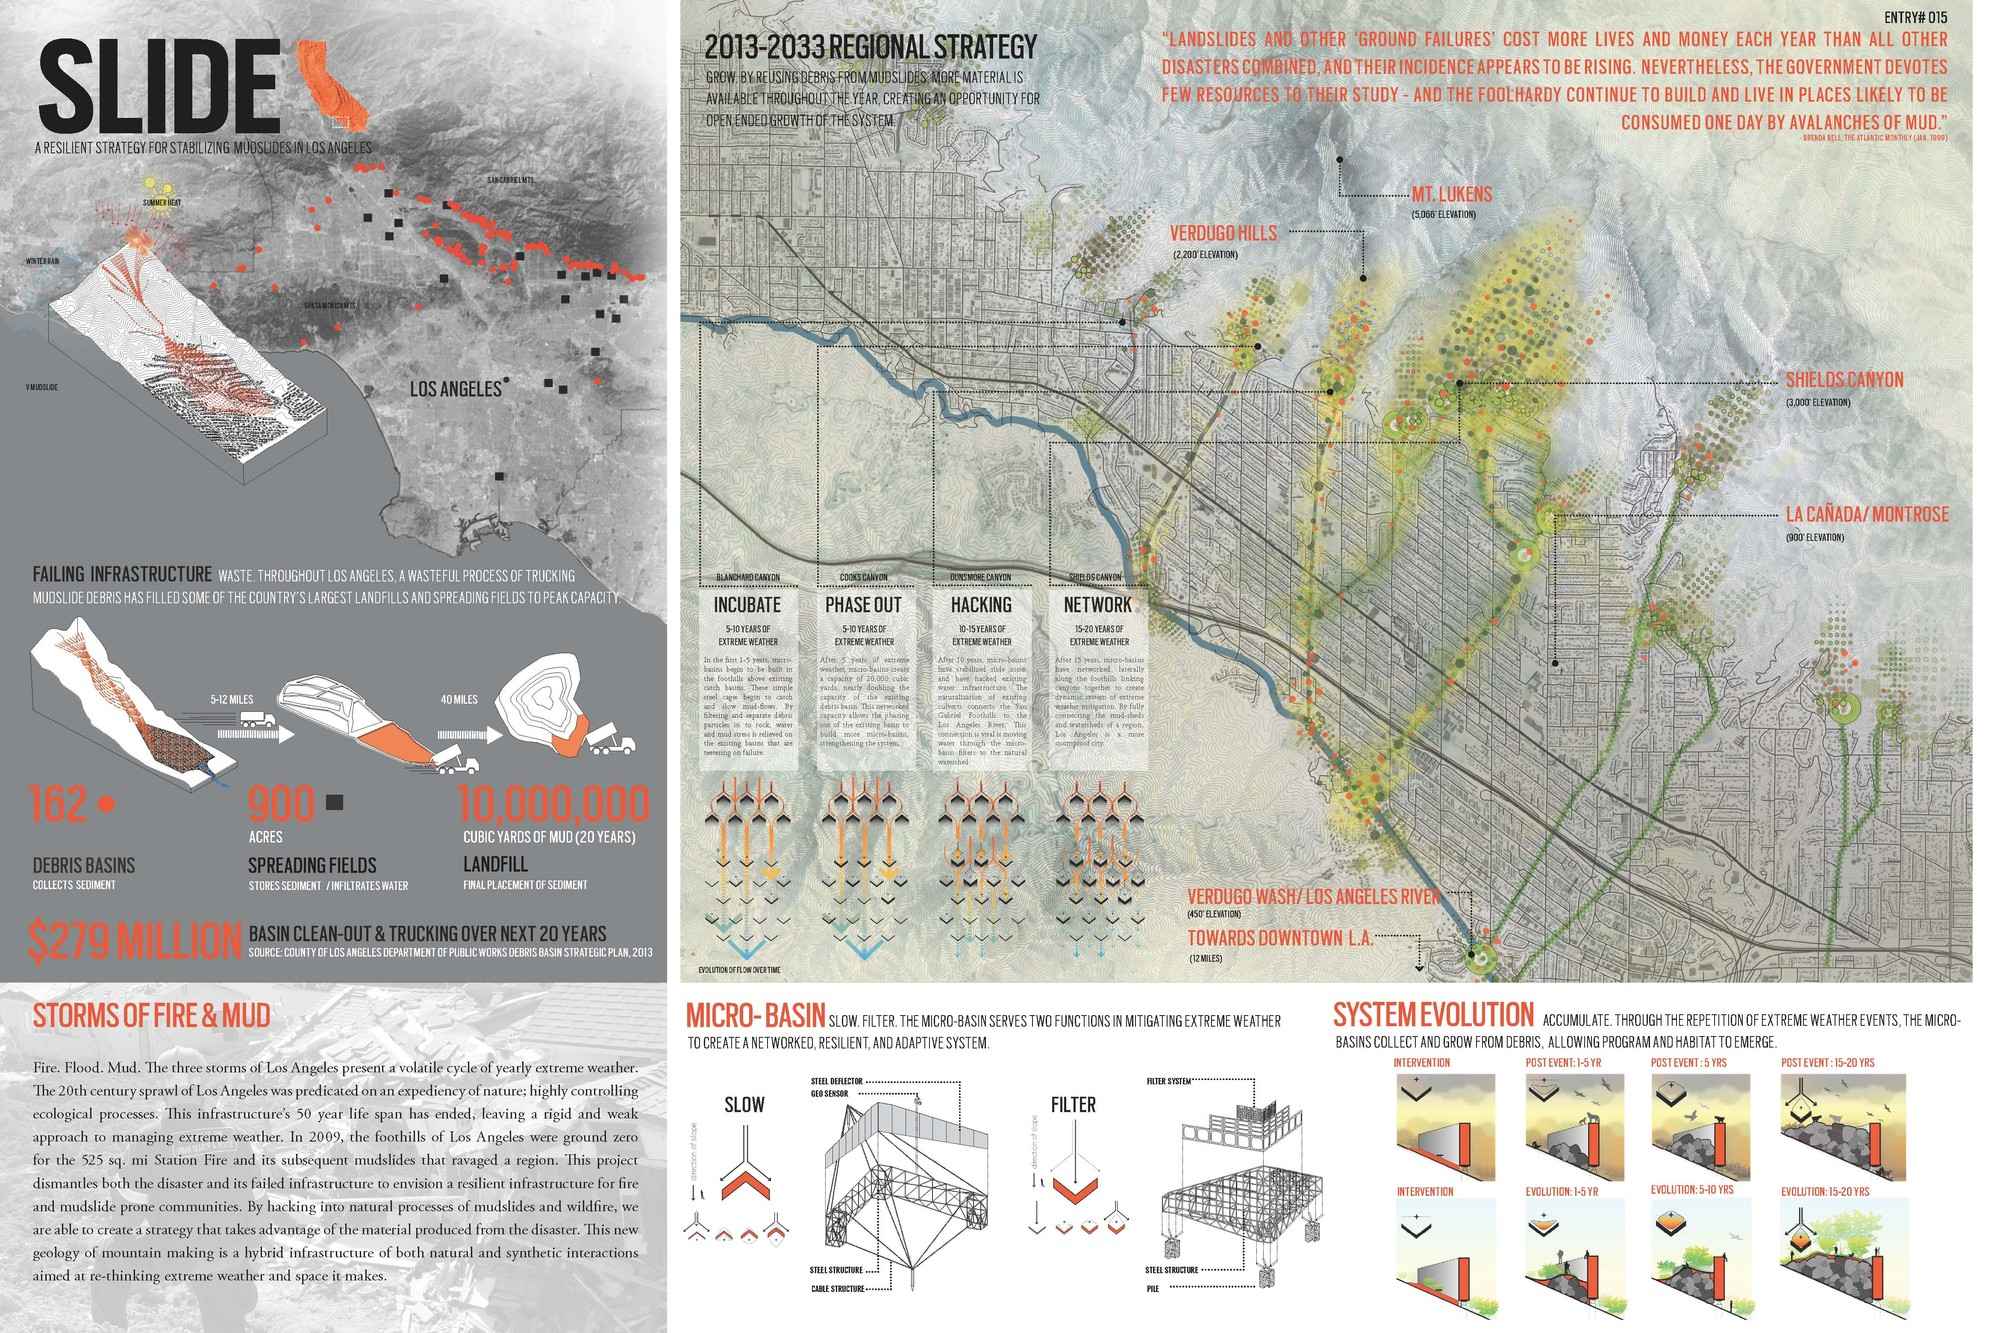 SLIDE: A Resilient Strategy for Stabilizing Mudslides in Los Angeles. Image Courtesy of ONE Prize